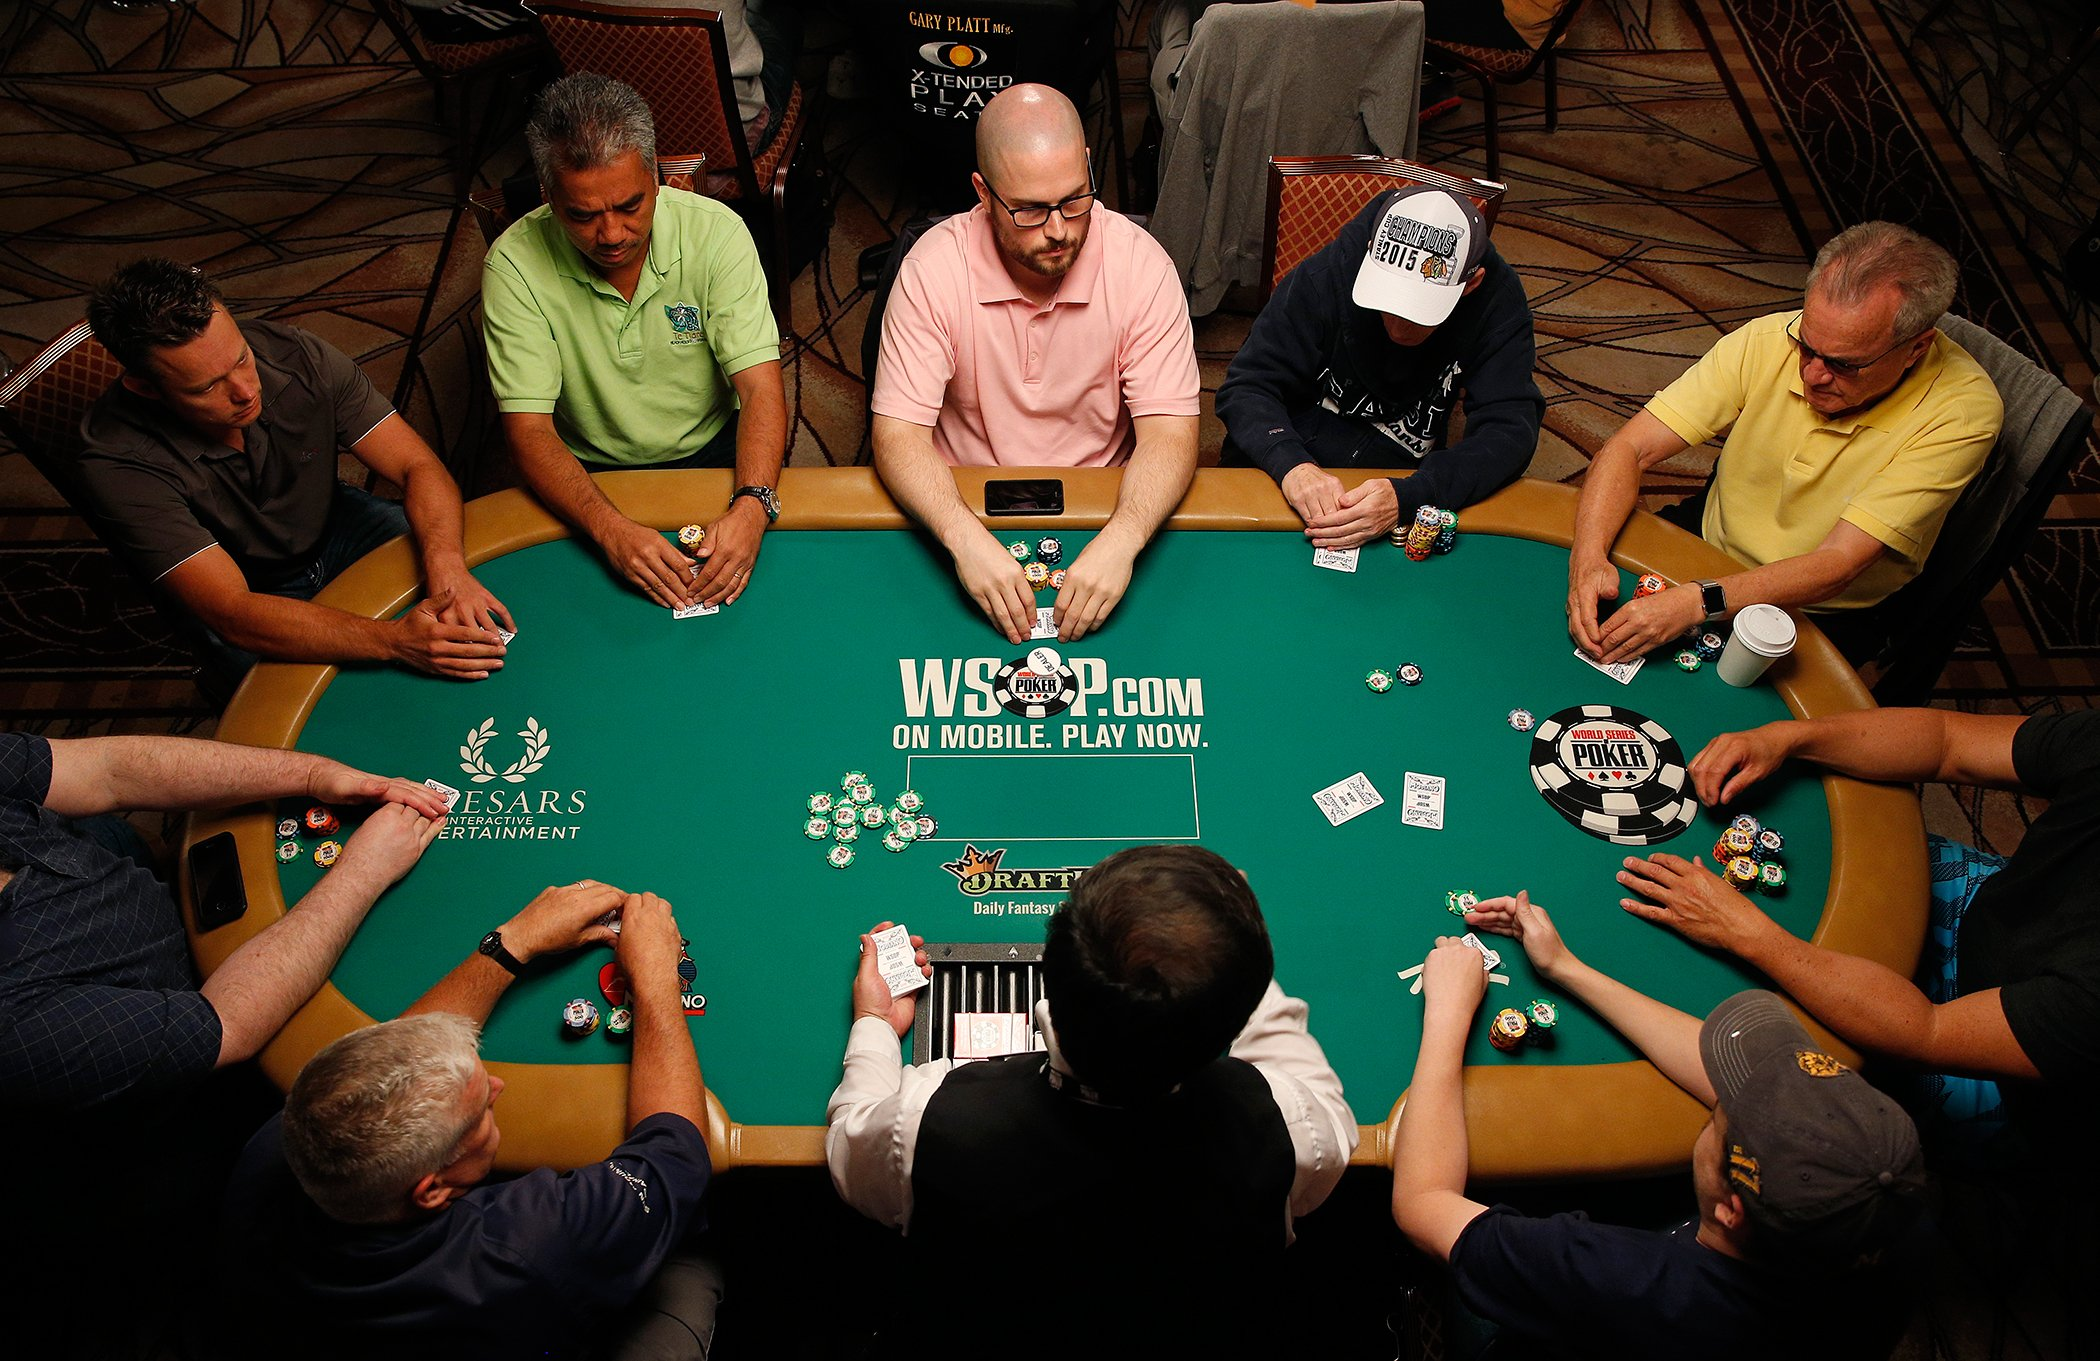 Poker – Player Image and More!